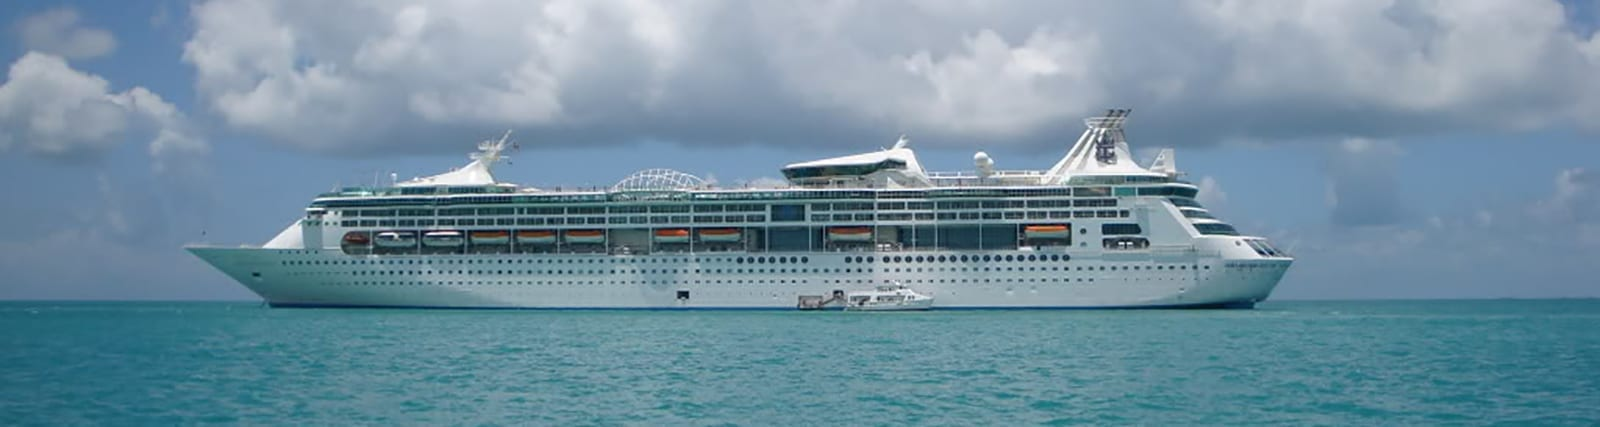 Enchantment of the seas cruises